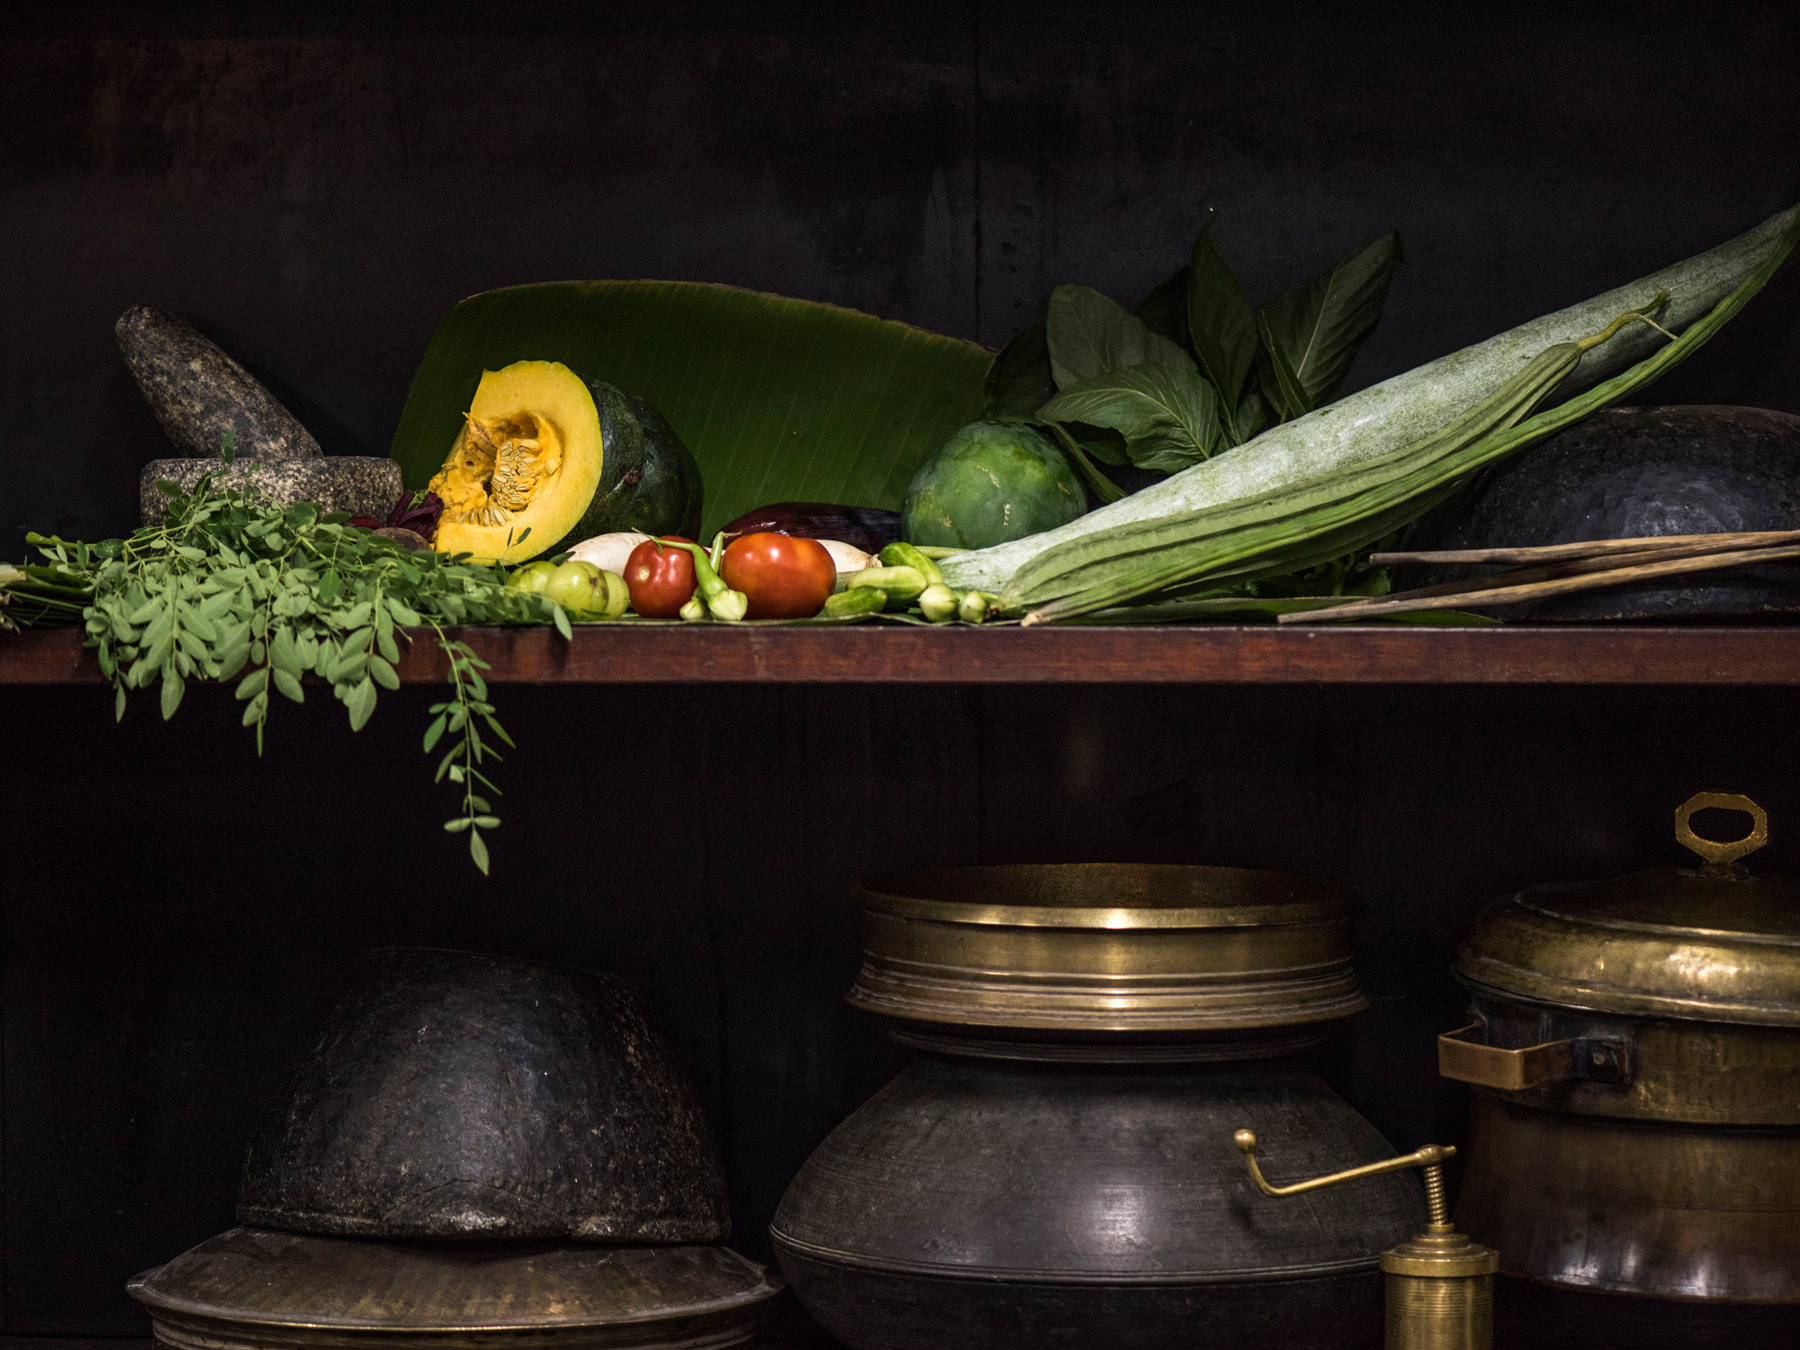 Ingredients for Ayurvedic food used for healing treatments